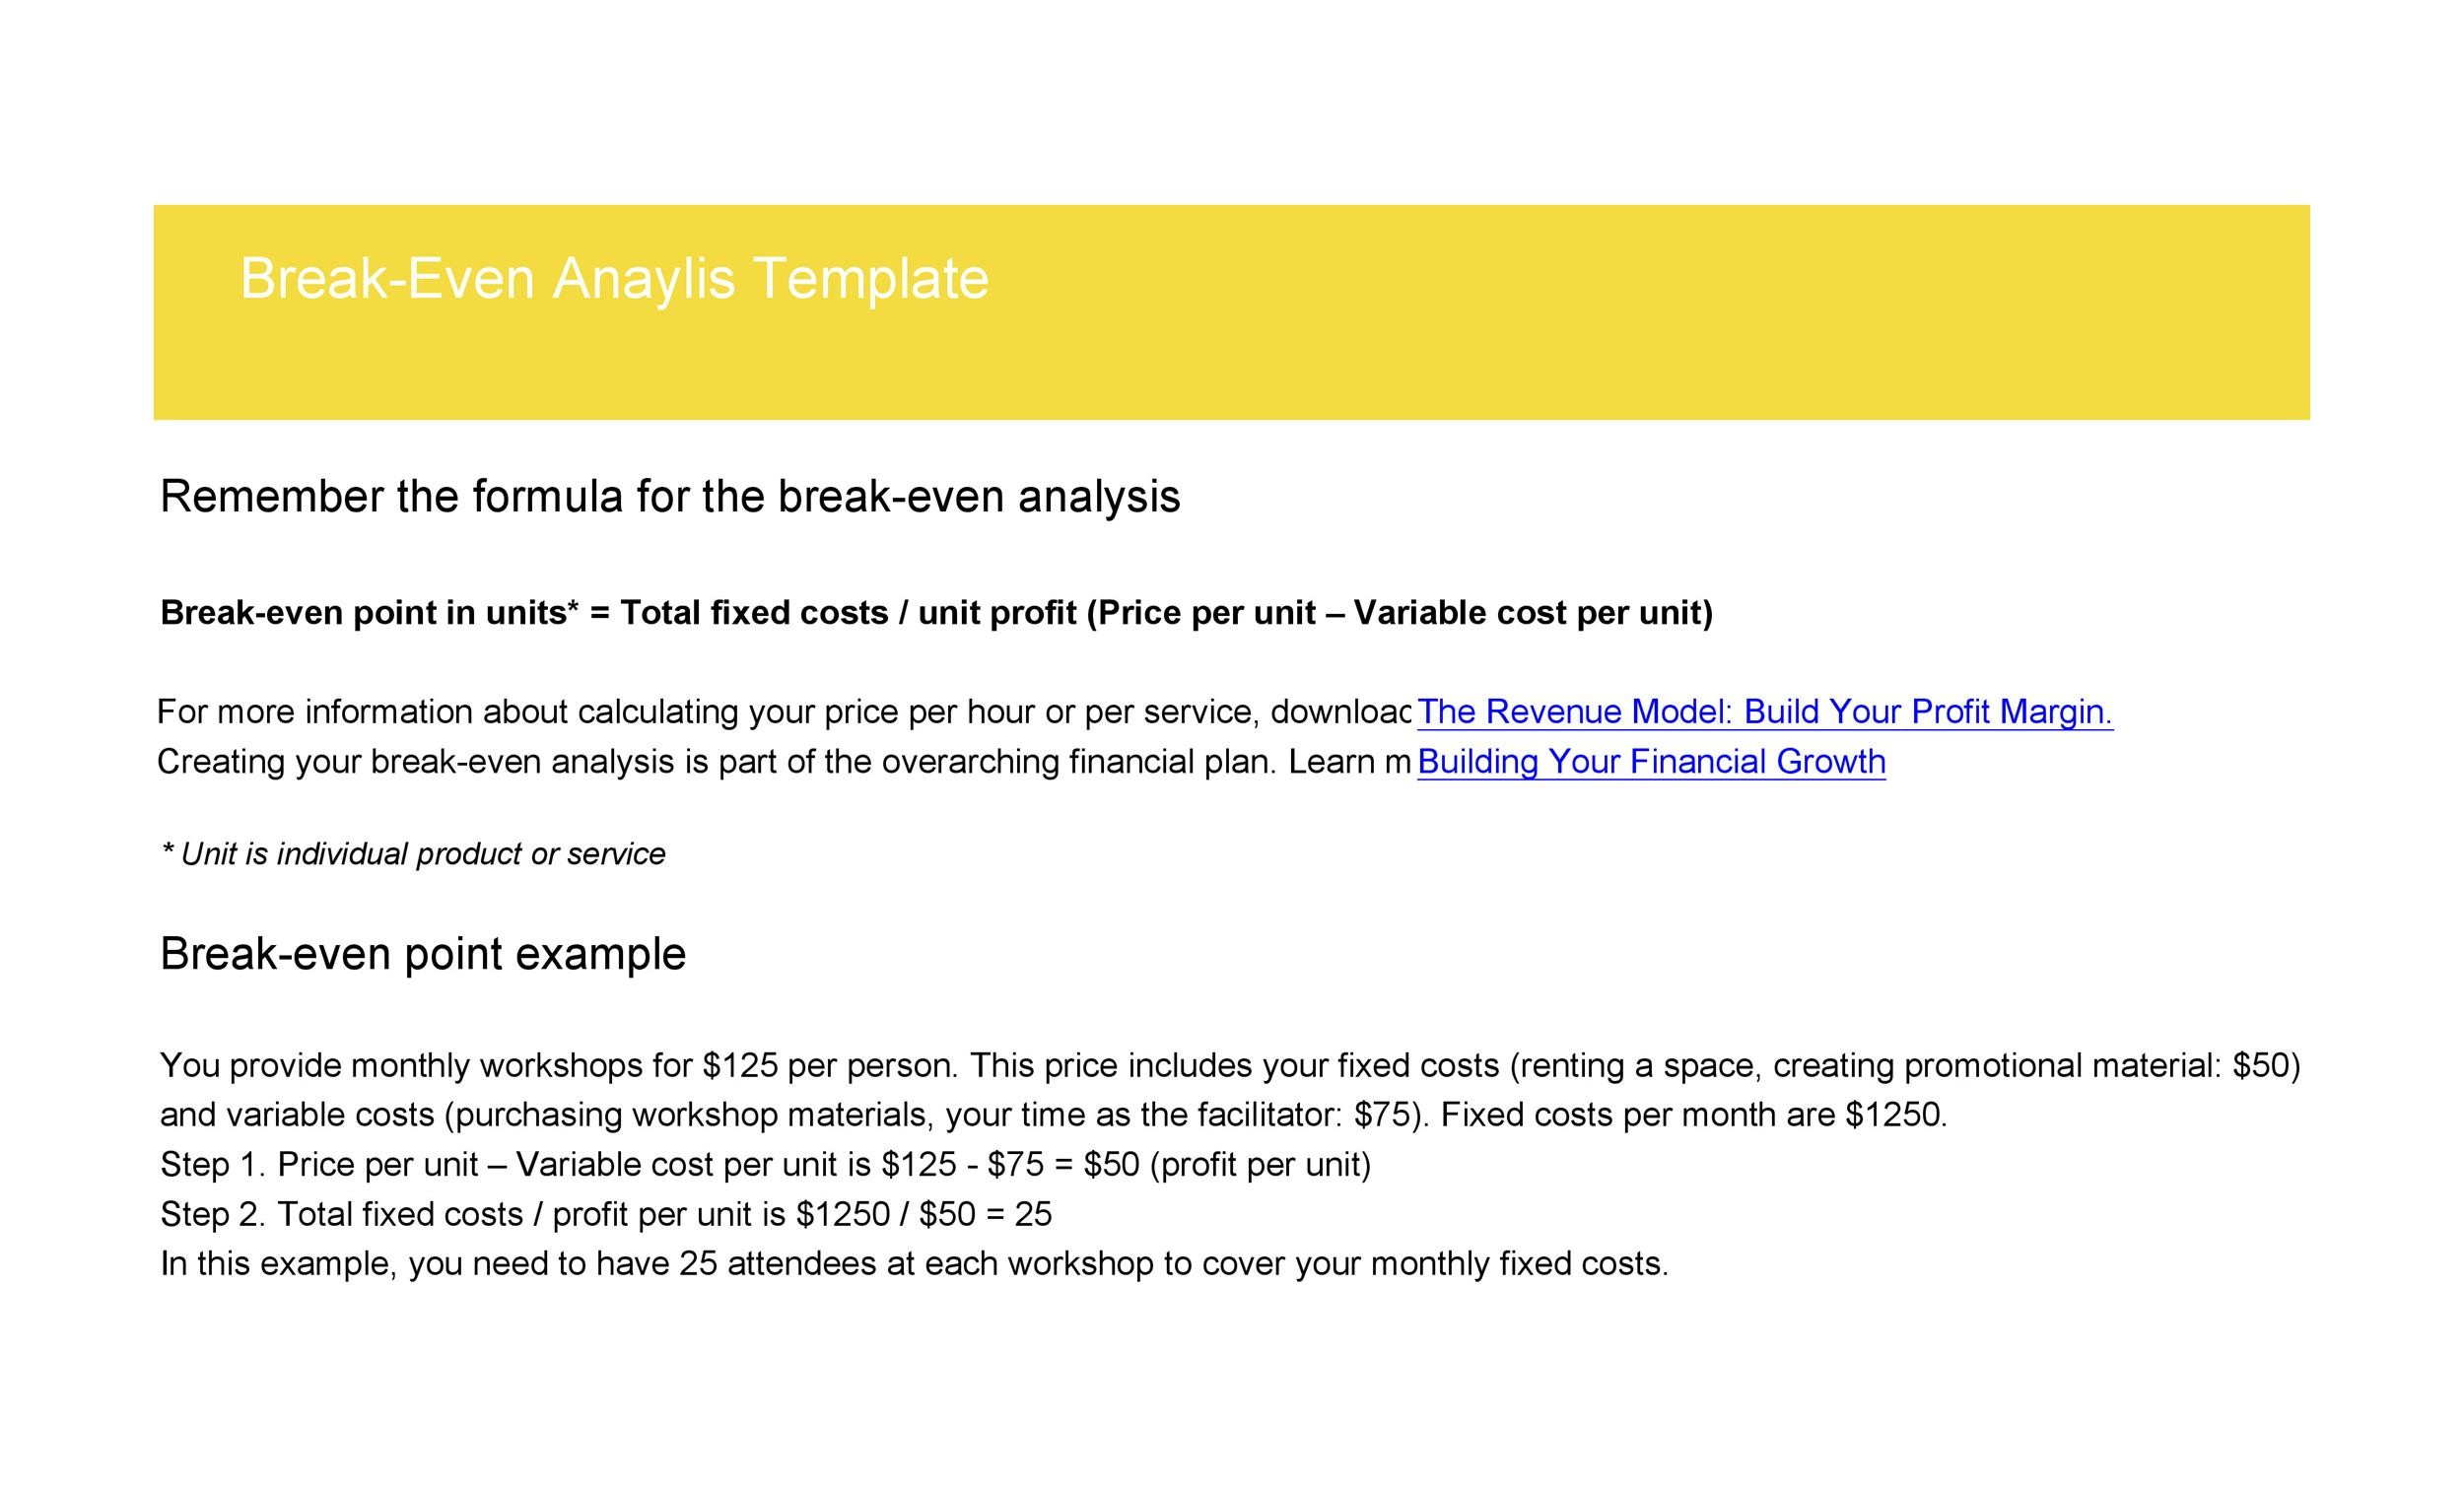 41 Free Break Even Analysis Templates  Excel Spreadsheets ᐅ